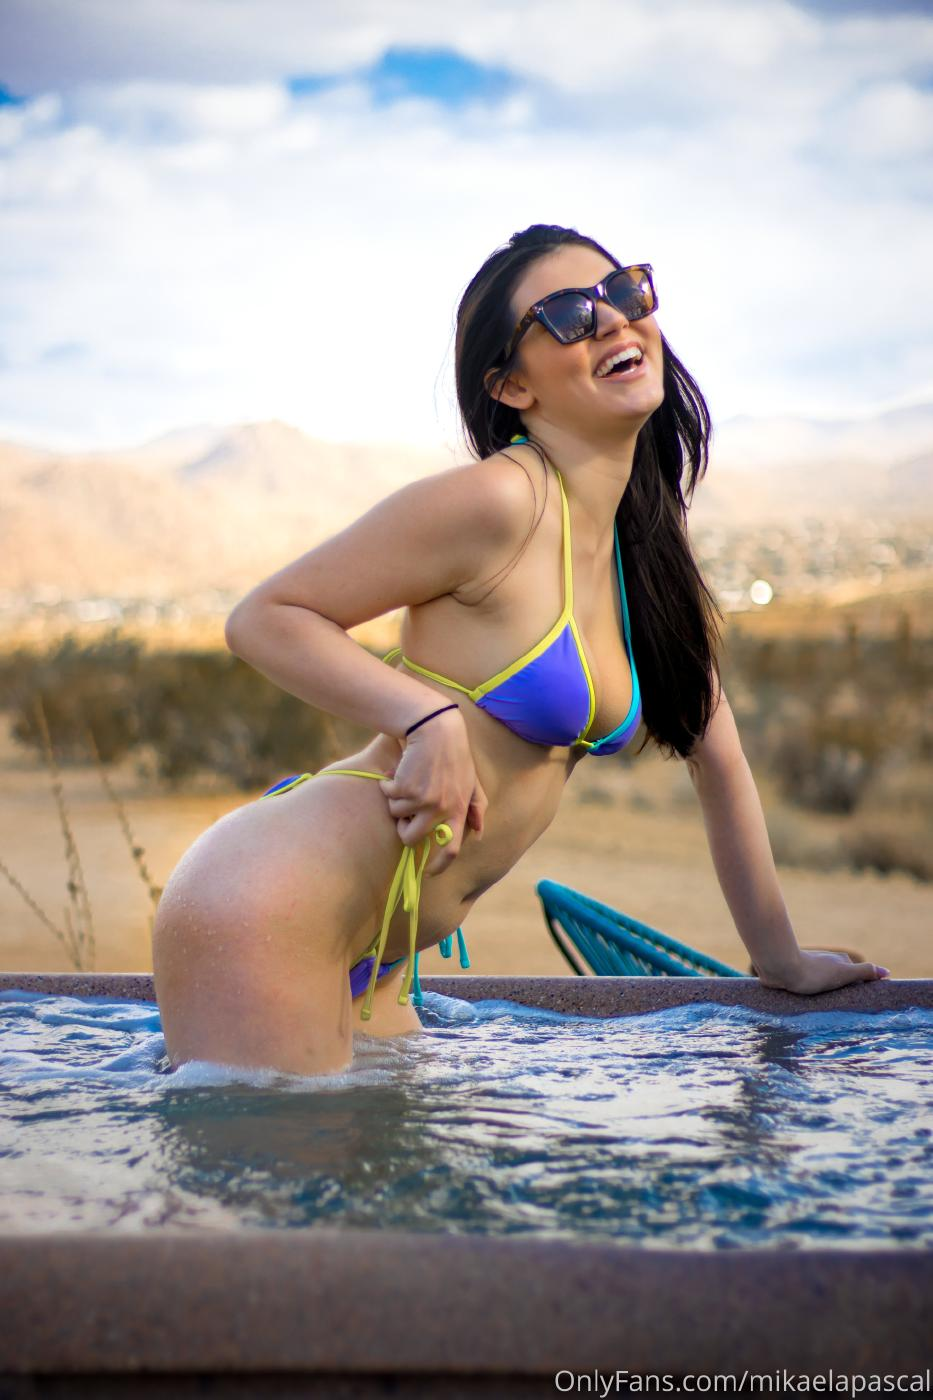 Mikaela Pascal Onlyfans April Extras Leaked 0025